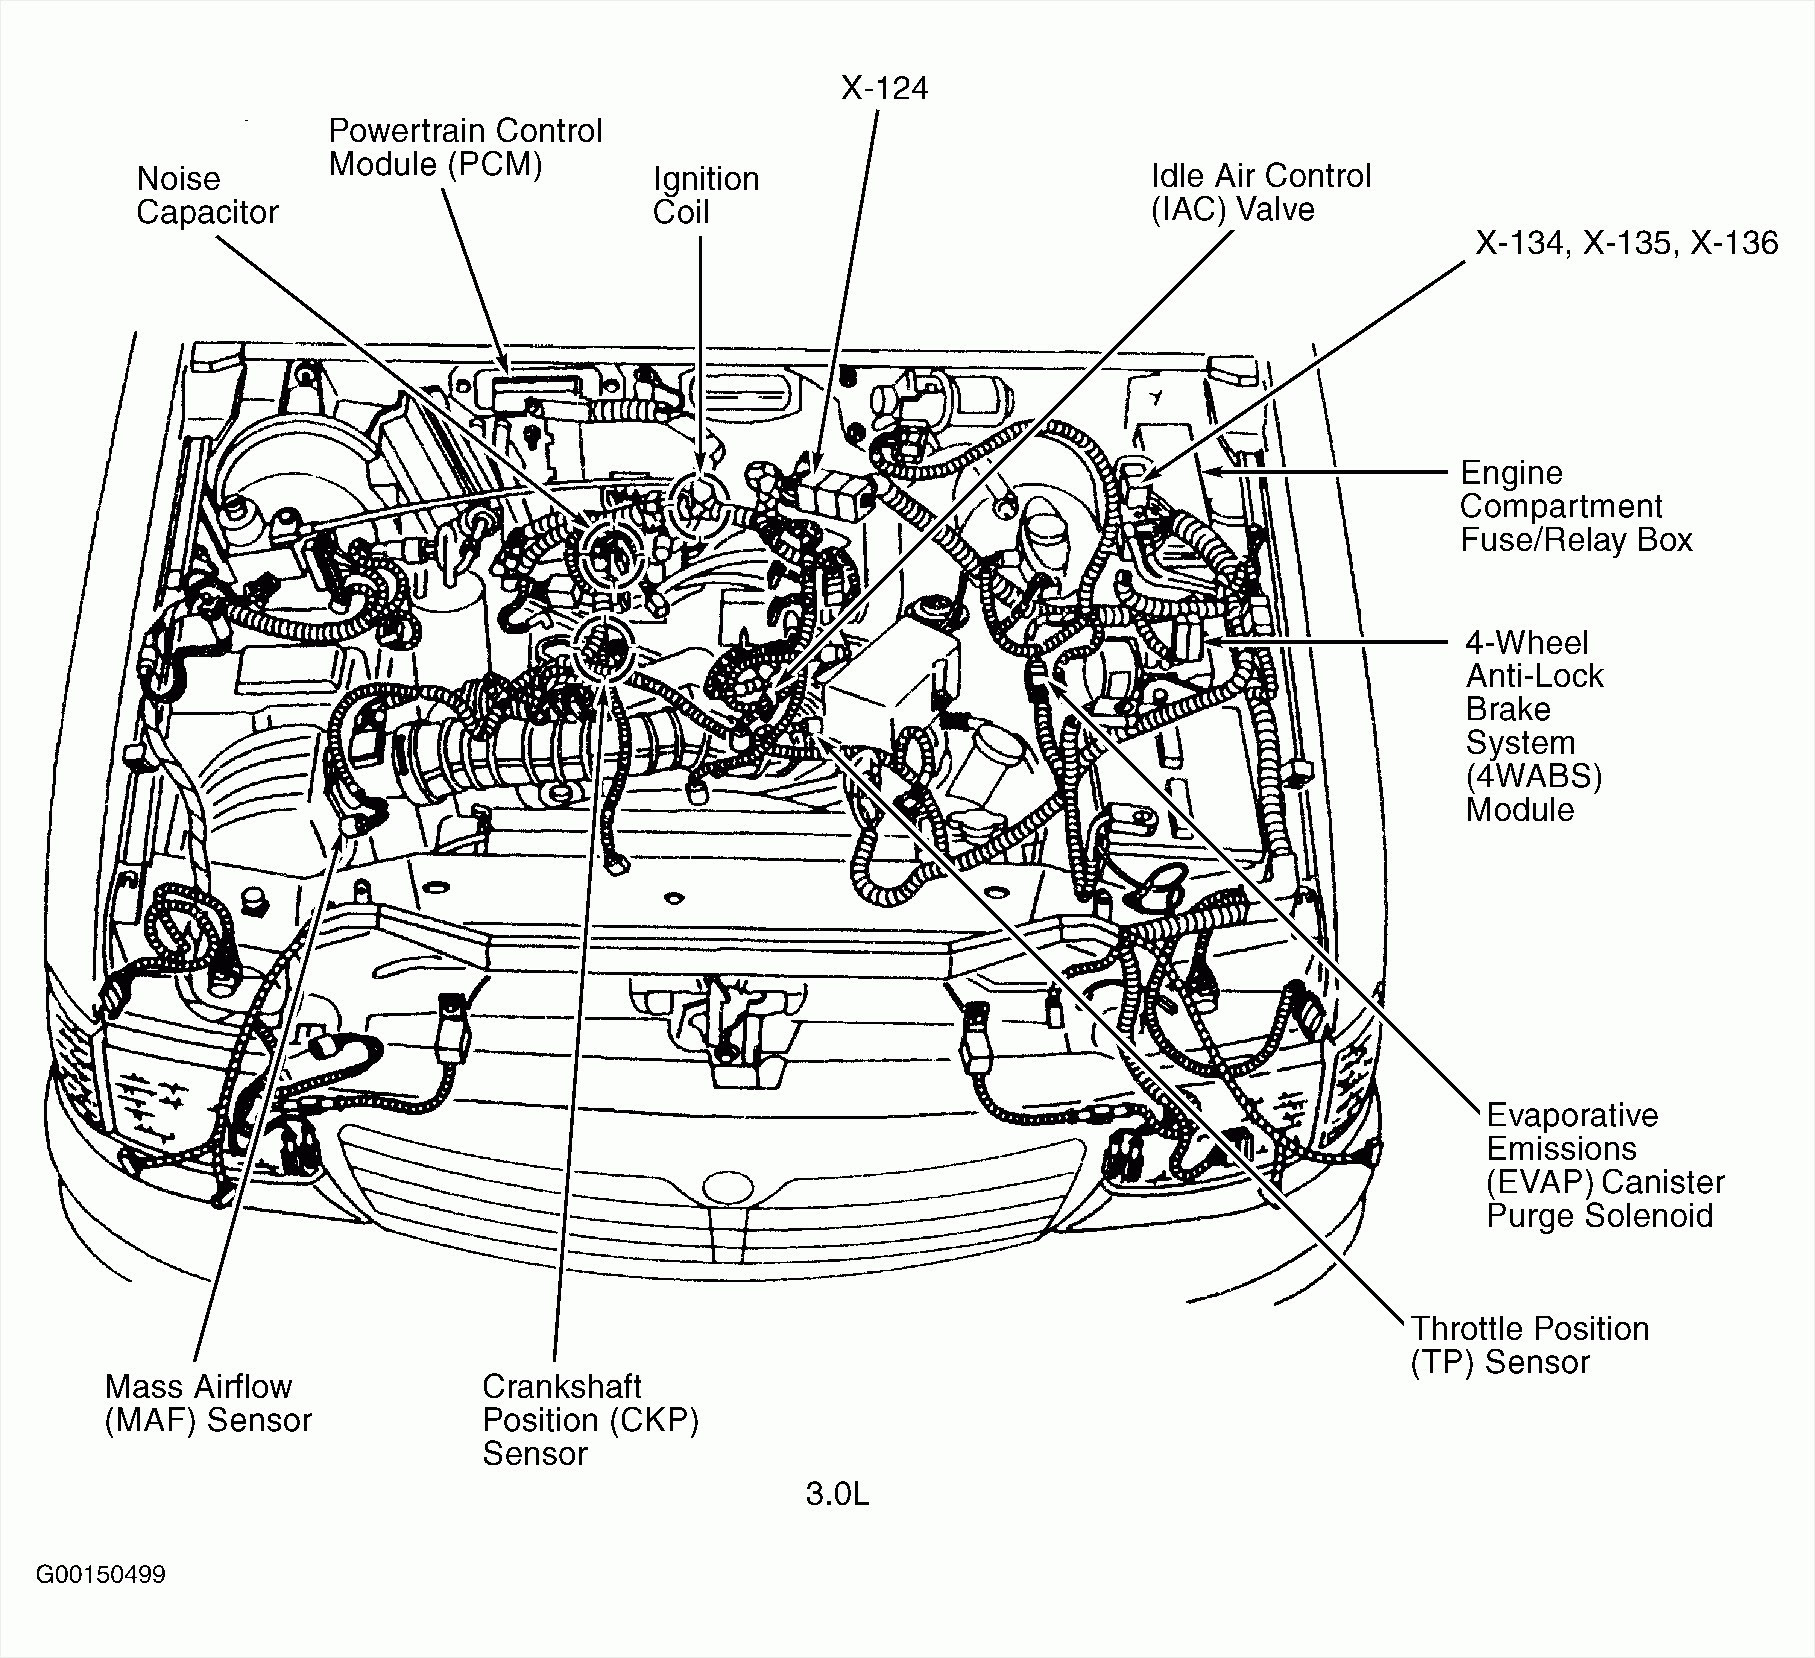 2000 chevy cavalier engine diagram   wiring diagrams fame  wiring diagram library